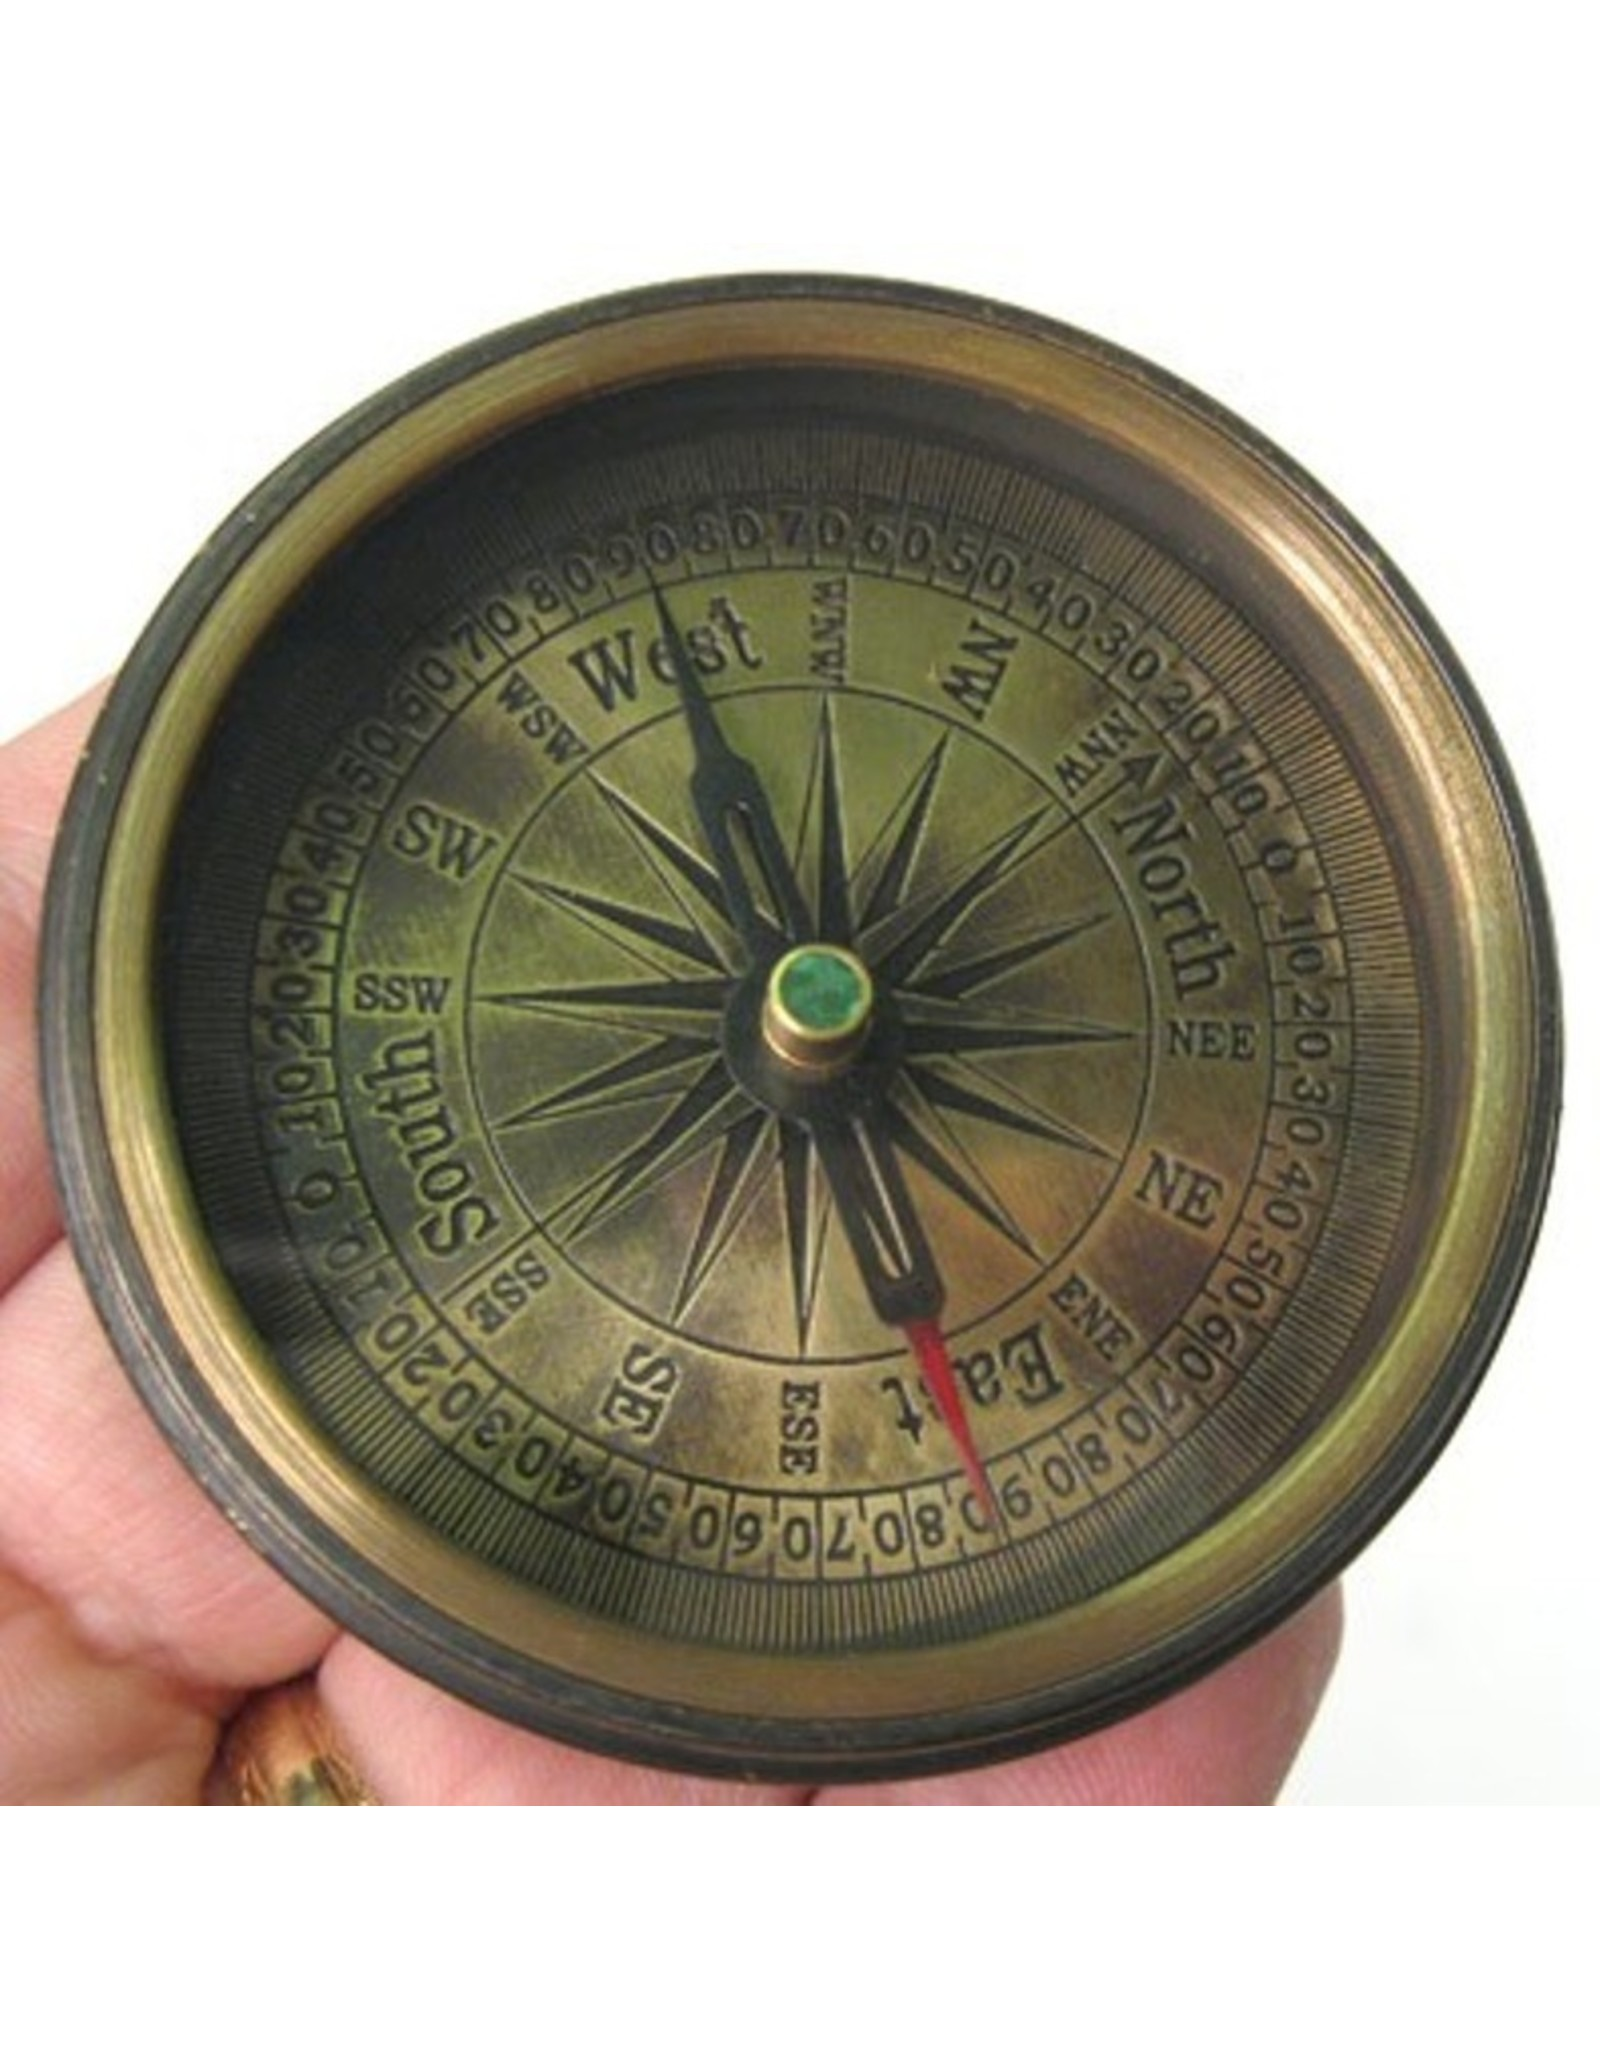 Trukado Giftware and Collectables - Boy Scouts Compass (brass)